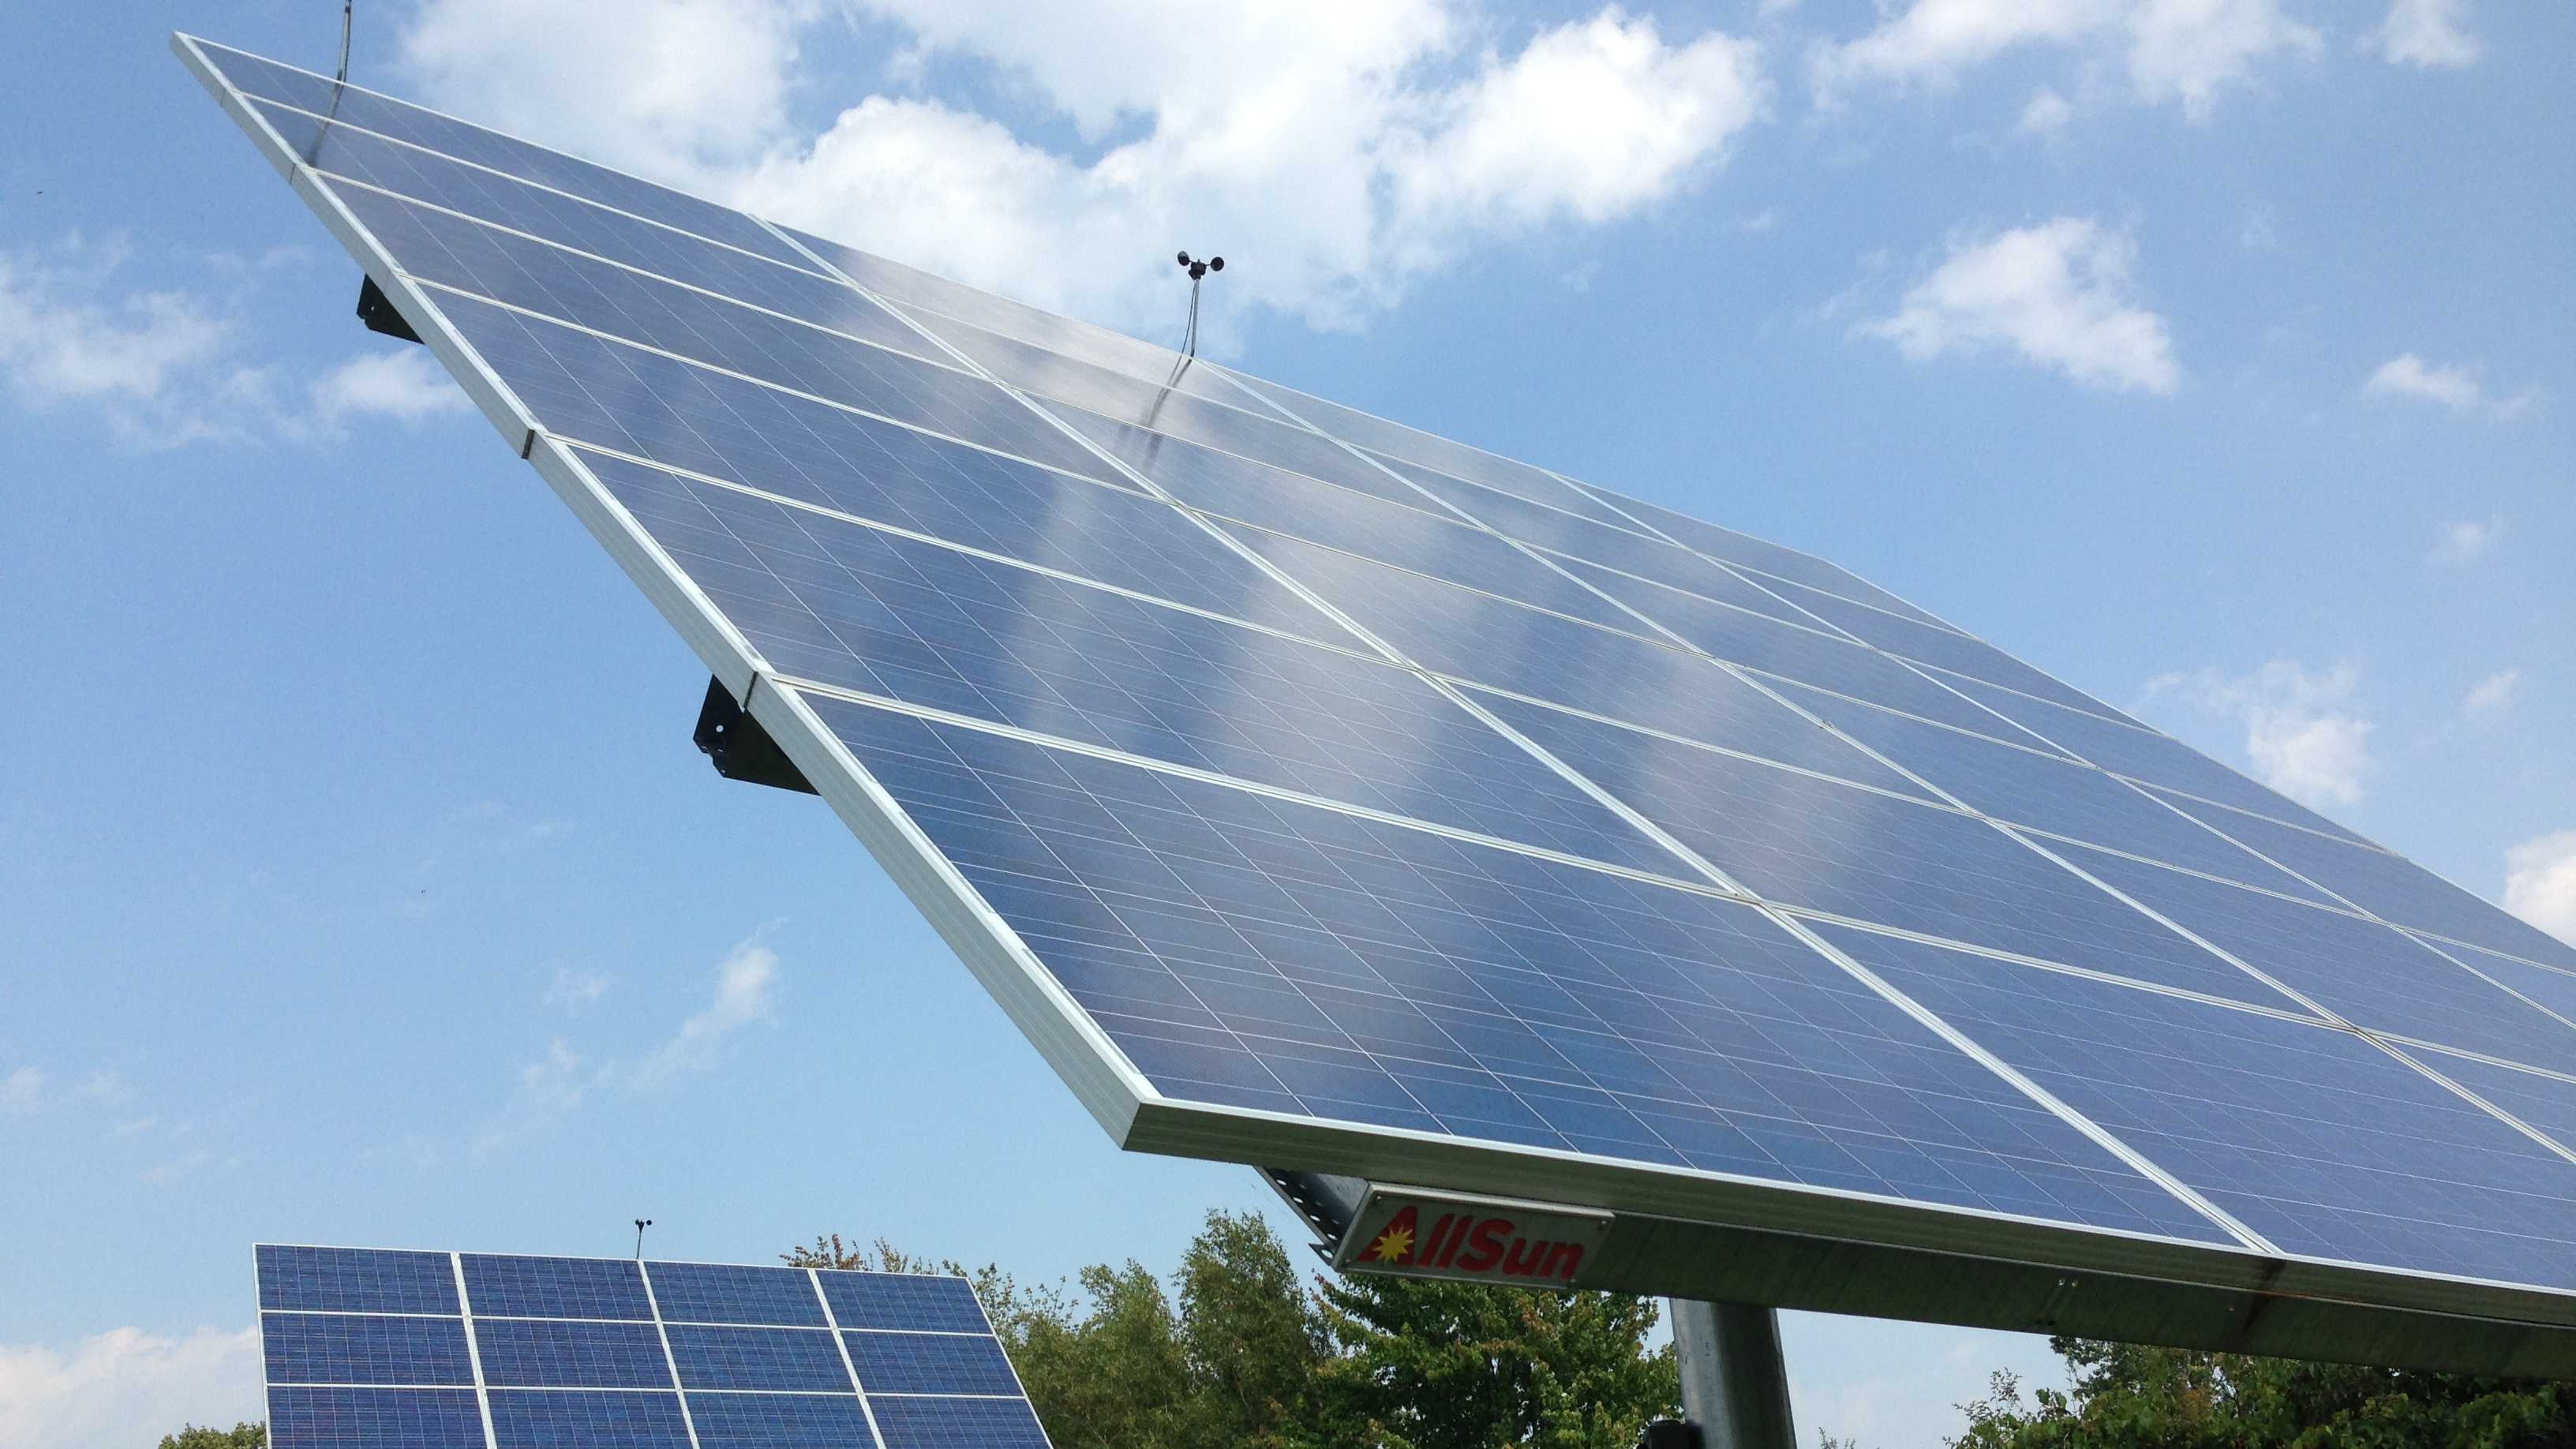 All-Earth Renewables' 'Suntracker' generates electricity Wednesday in Williston. The panels adjust with the arc of the sun, generating up to 40 percent more electricity than fixed models.